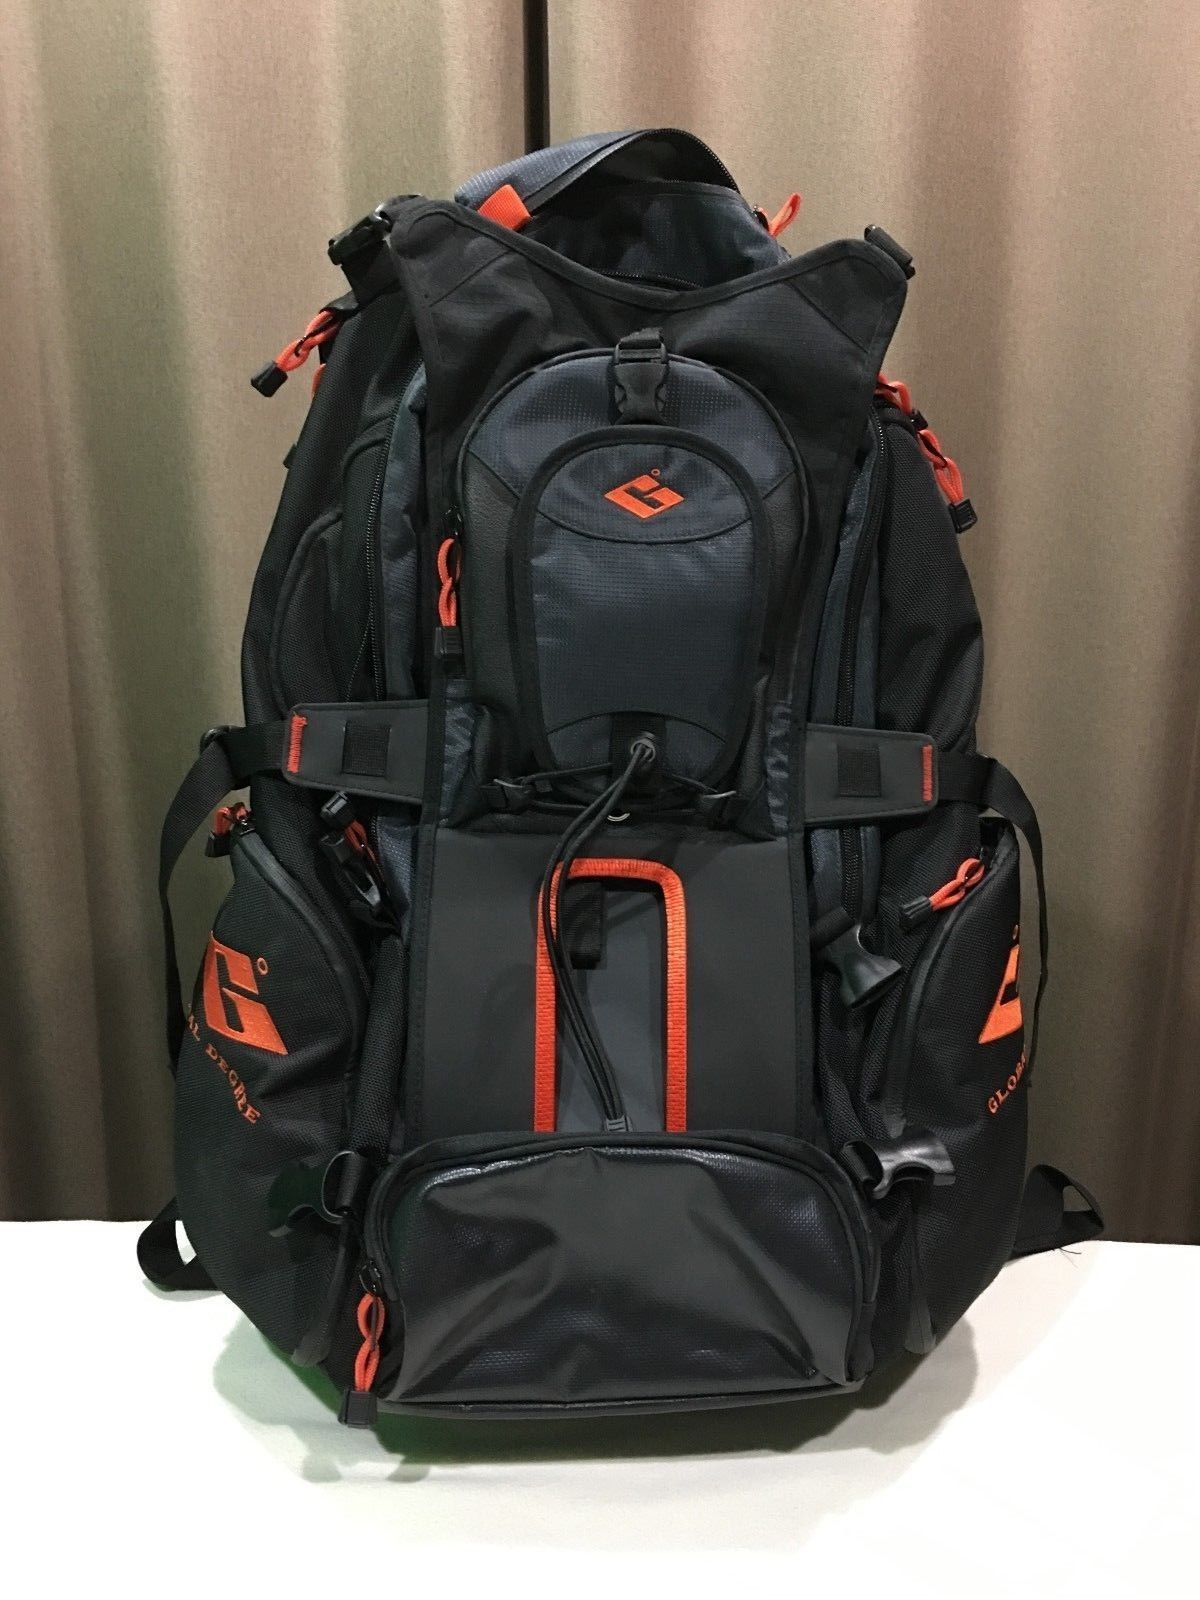 3fbf964d9 Global Degree Backcountry Backpack Ski / Snowboard Boot Outdoor Gear ...